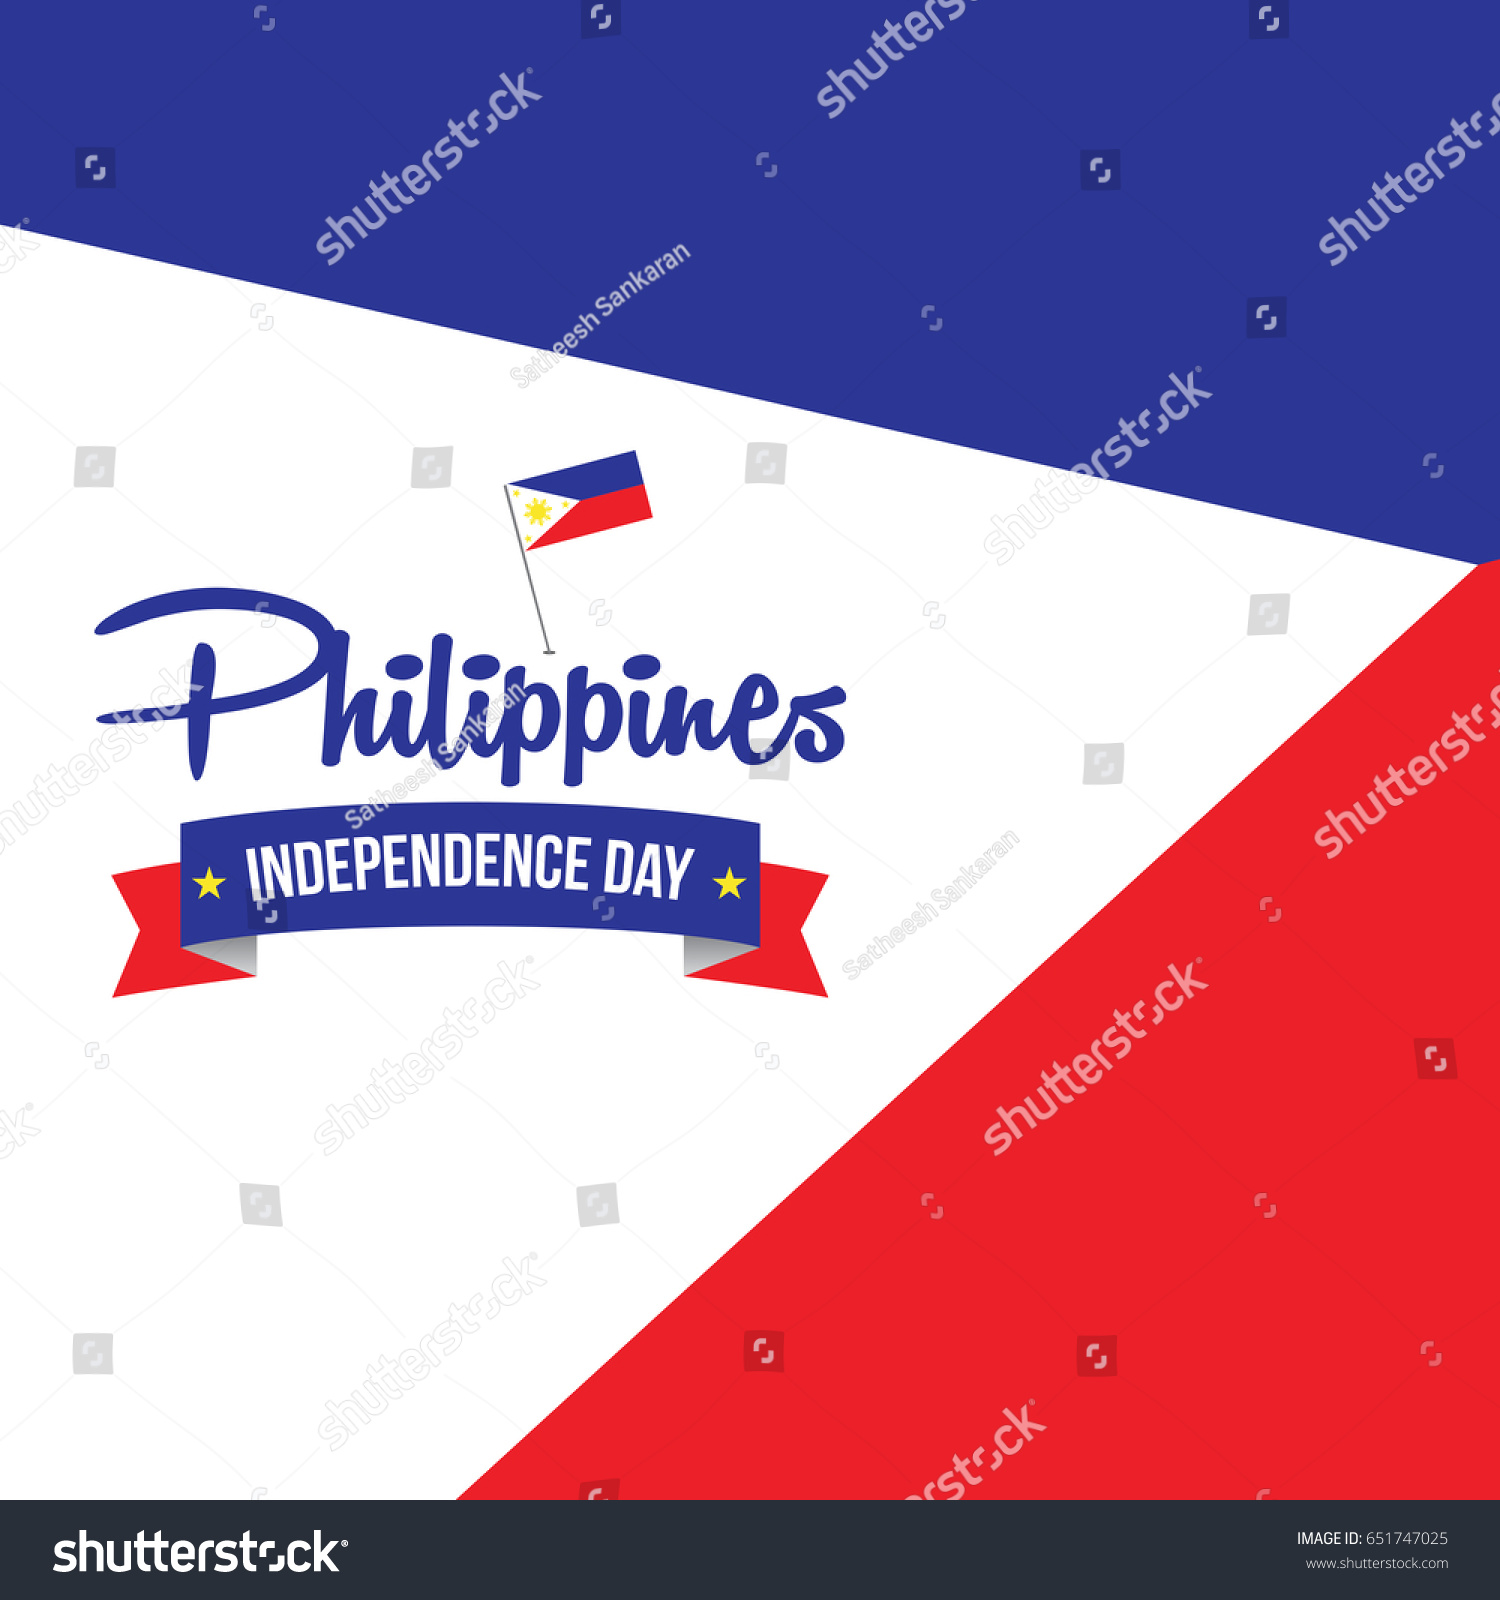 philippines independence day vector illustration philippines stock